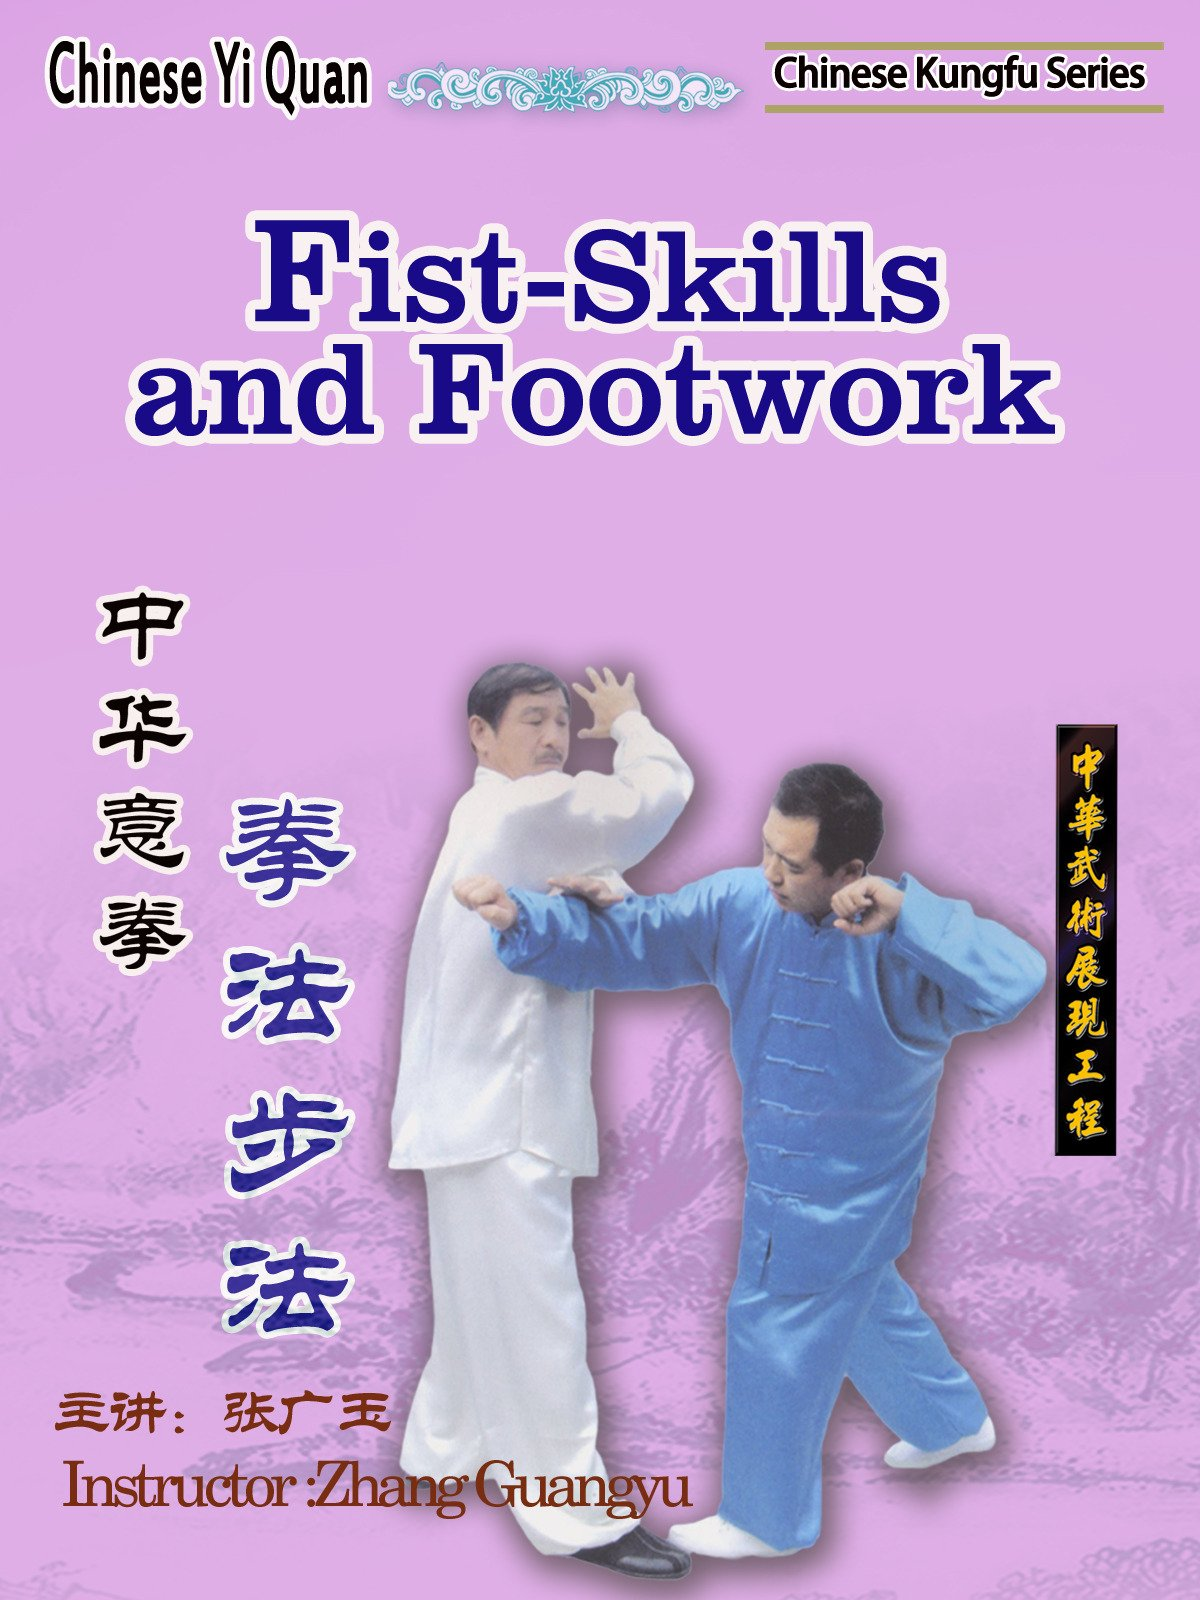 Chinese Yi Quan-Fist-Skills and Footwork(Instructor :Zhang Guangyu)